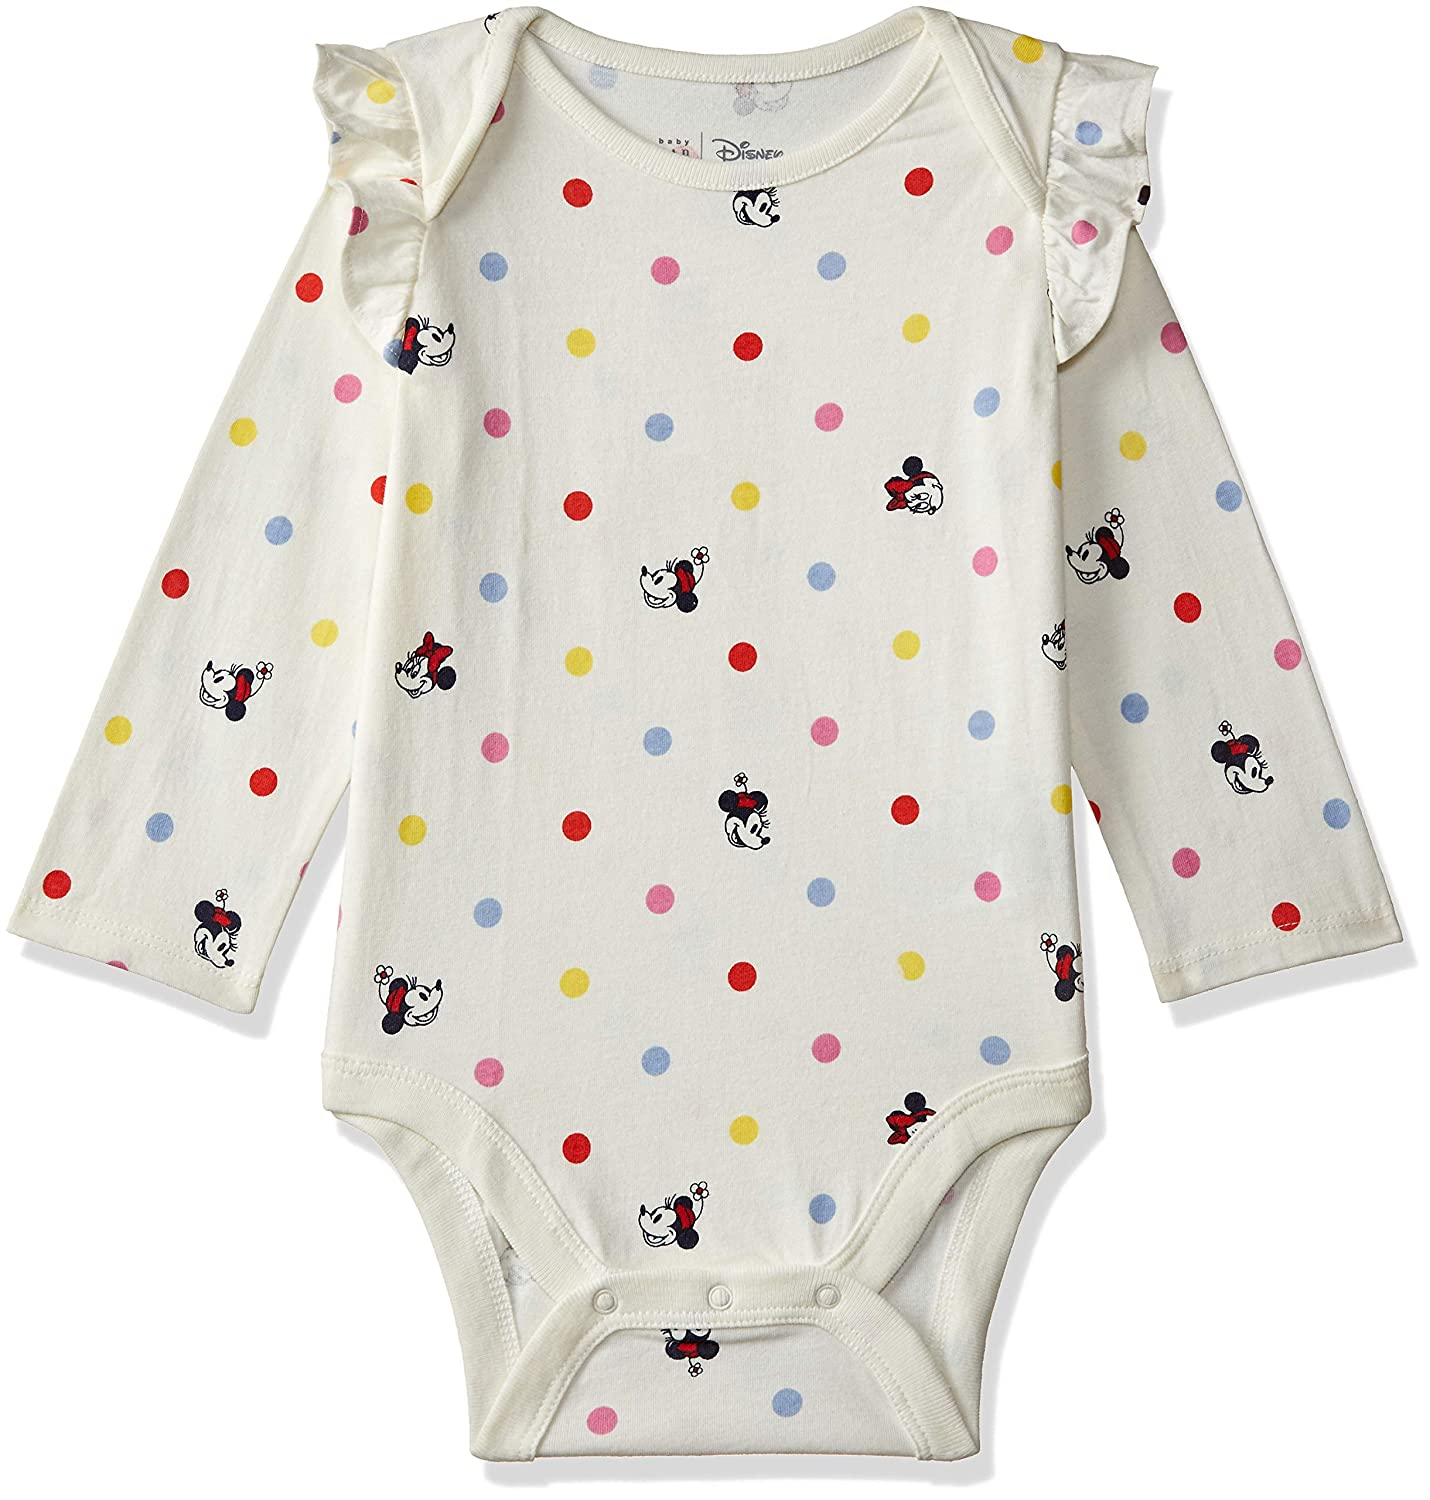 4788e1e4b26 GAP Baby Girl s Romper Suit  Amazon.in  Clothing   Accessories